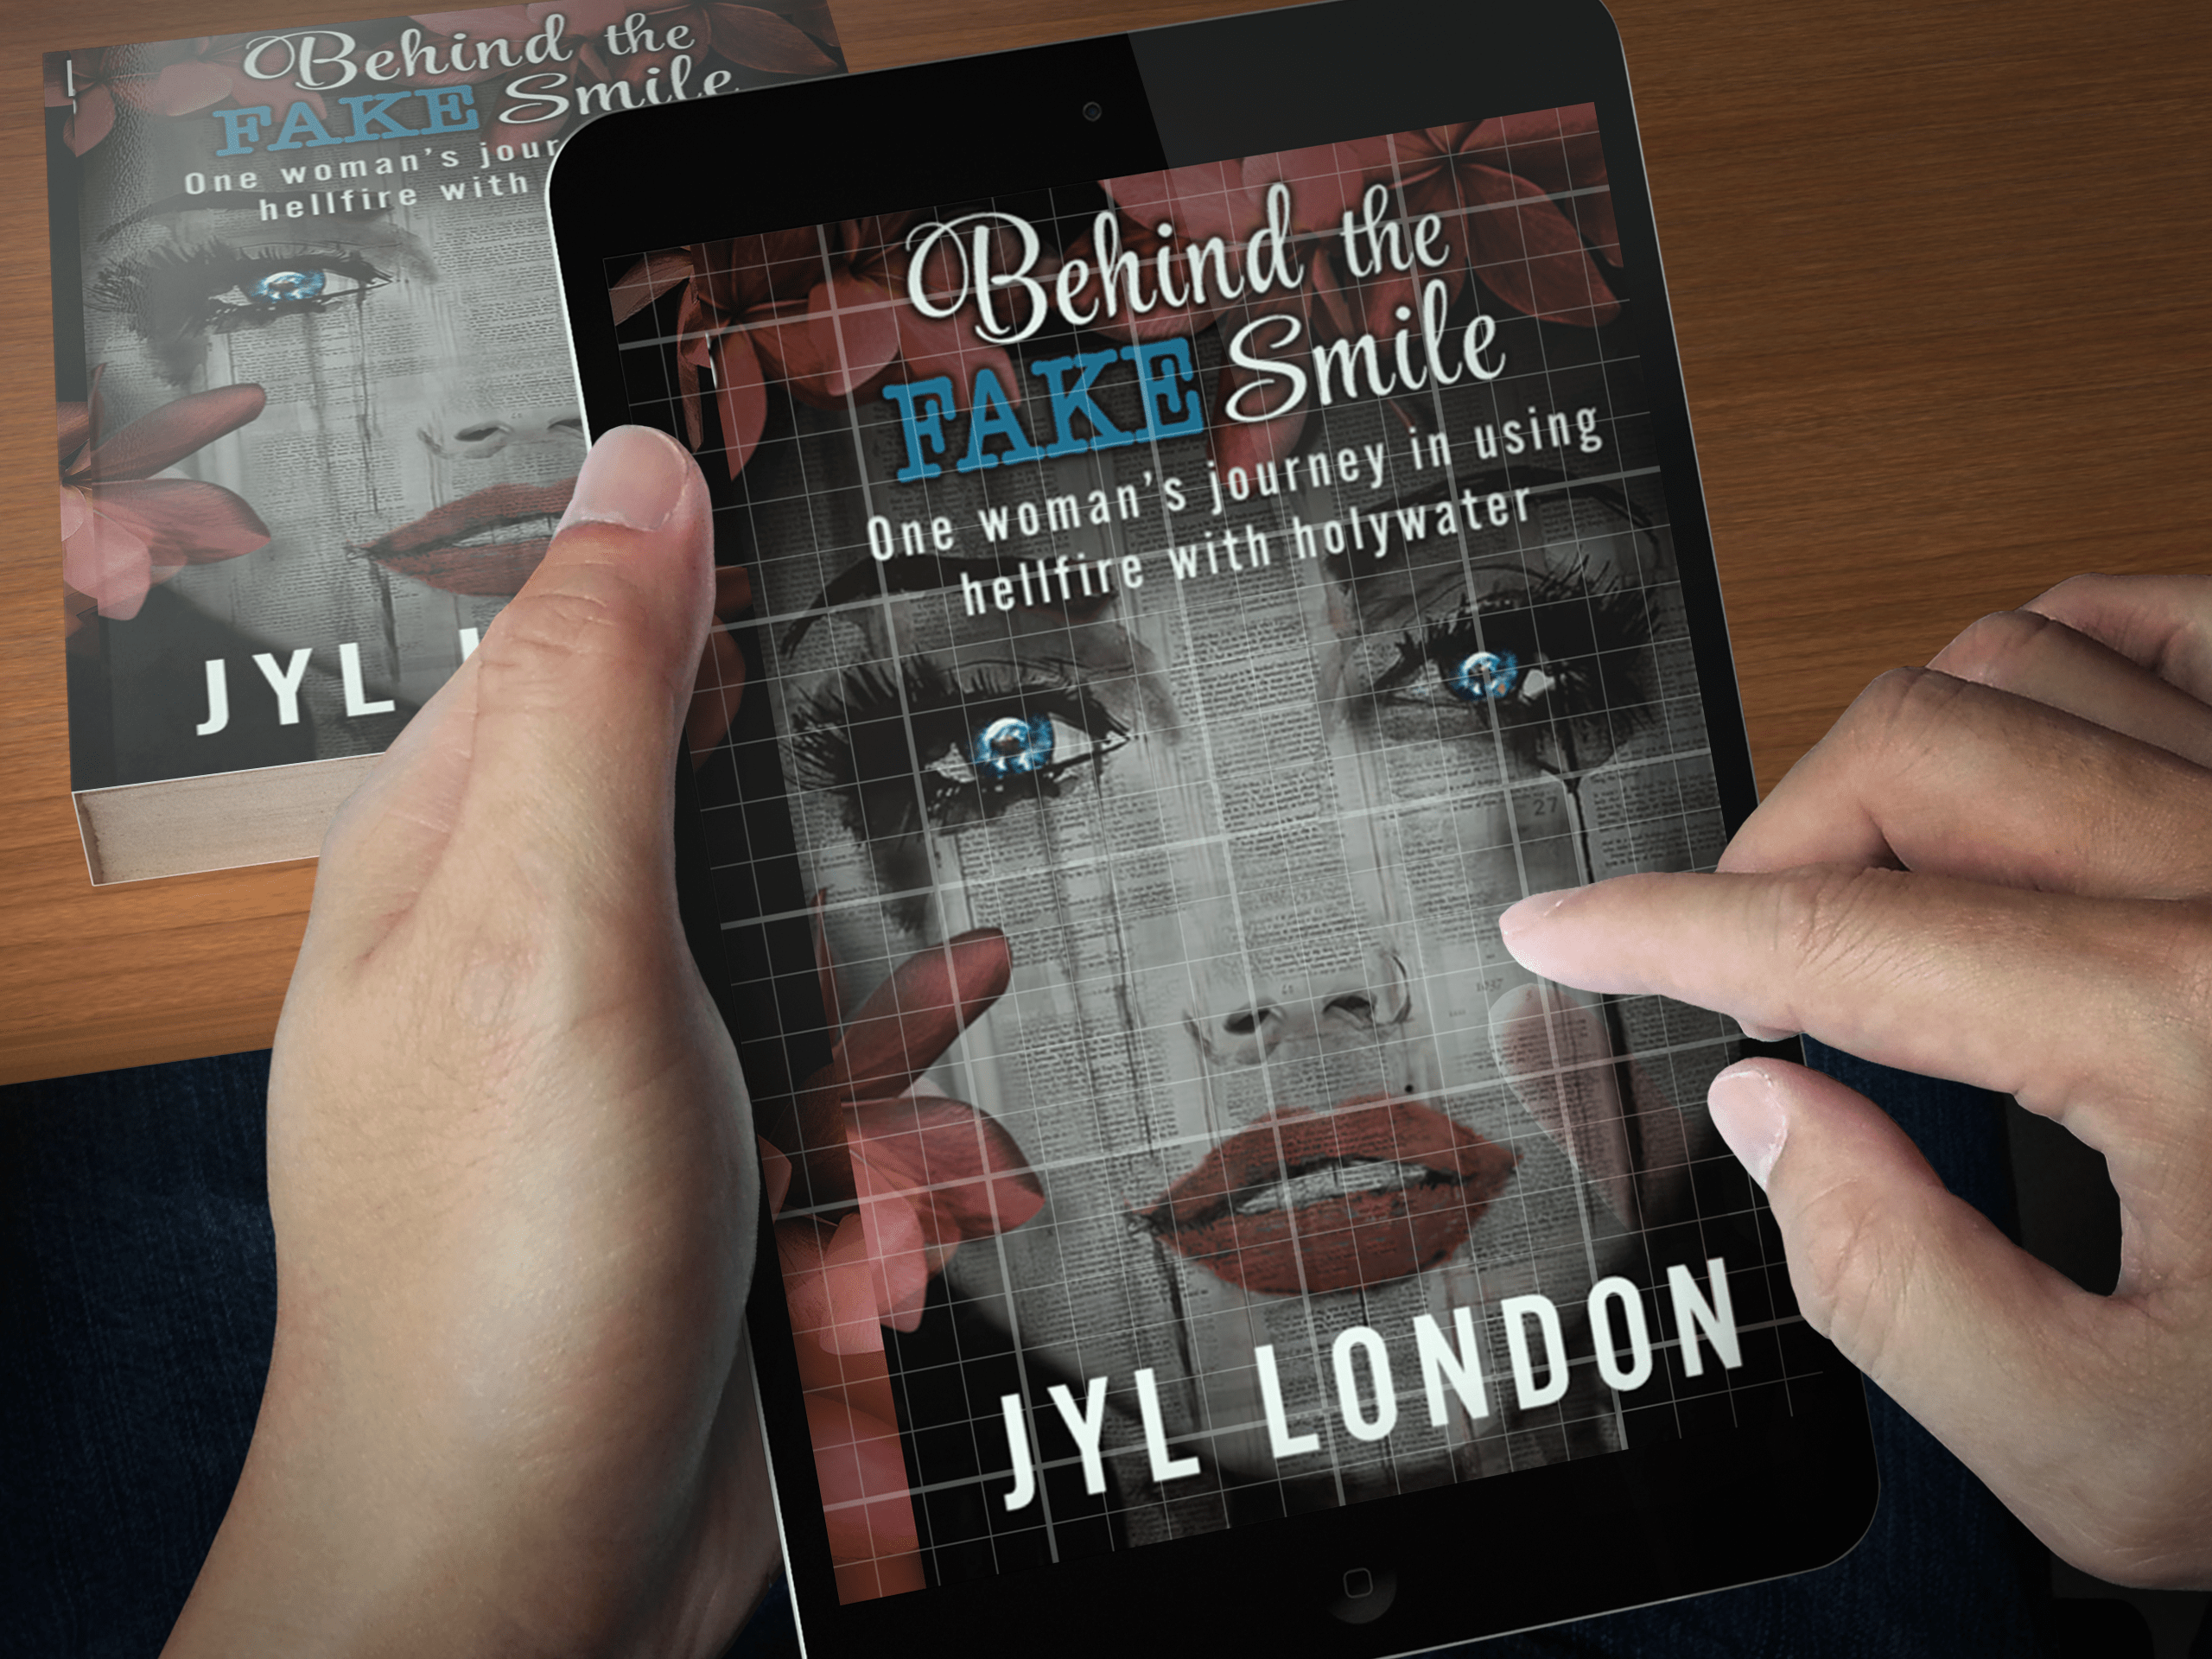 Behind the Fake Smile - eBook and Print